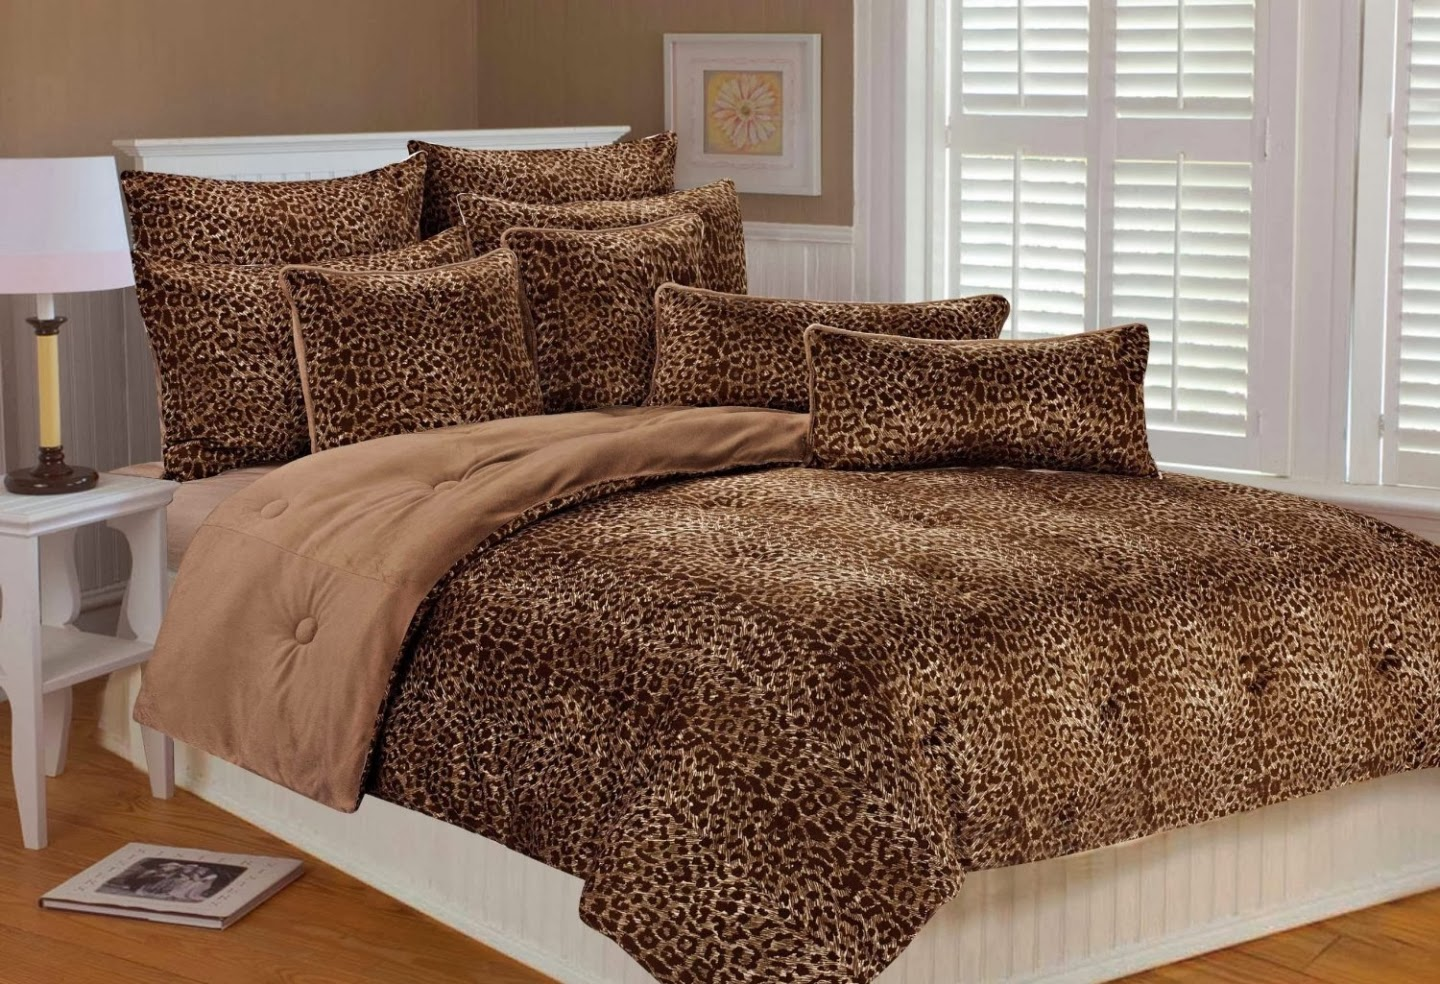 all about insurance: Cheetah wallpaper for bedroom